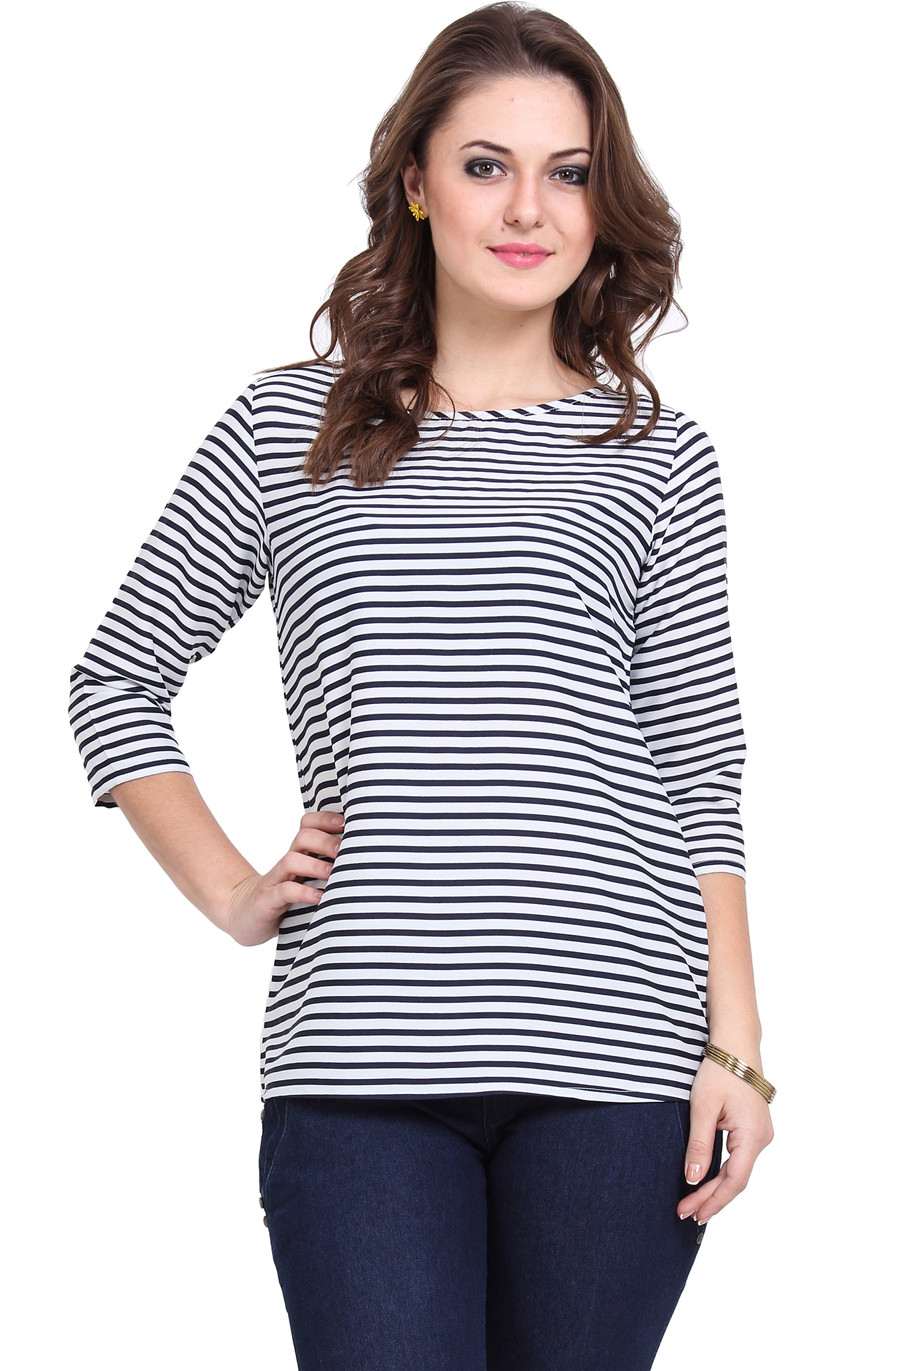 Flipkart - Tops, Dresses & more Minimum 80% Off